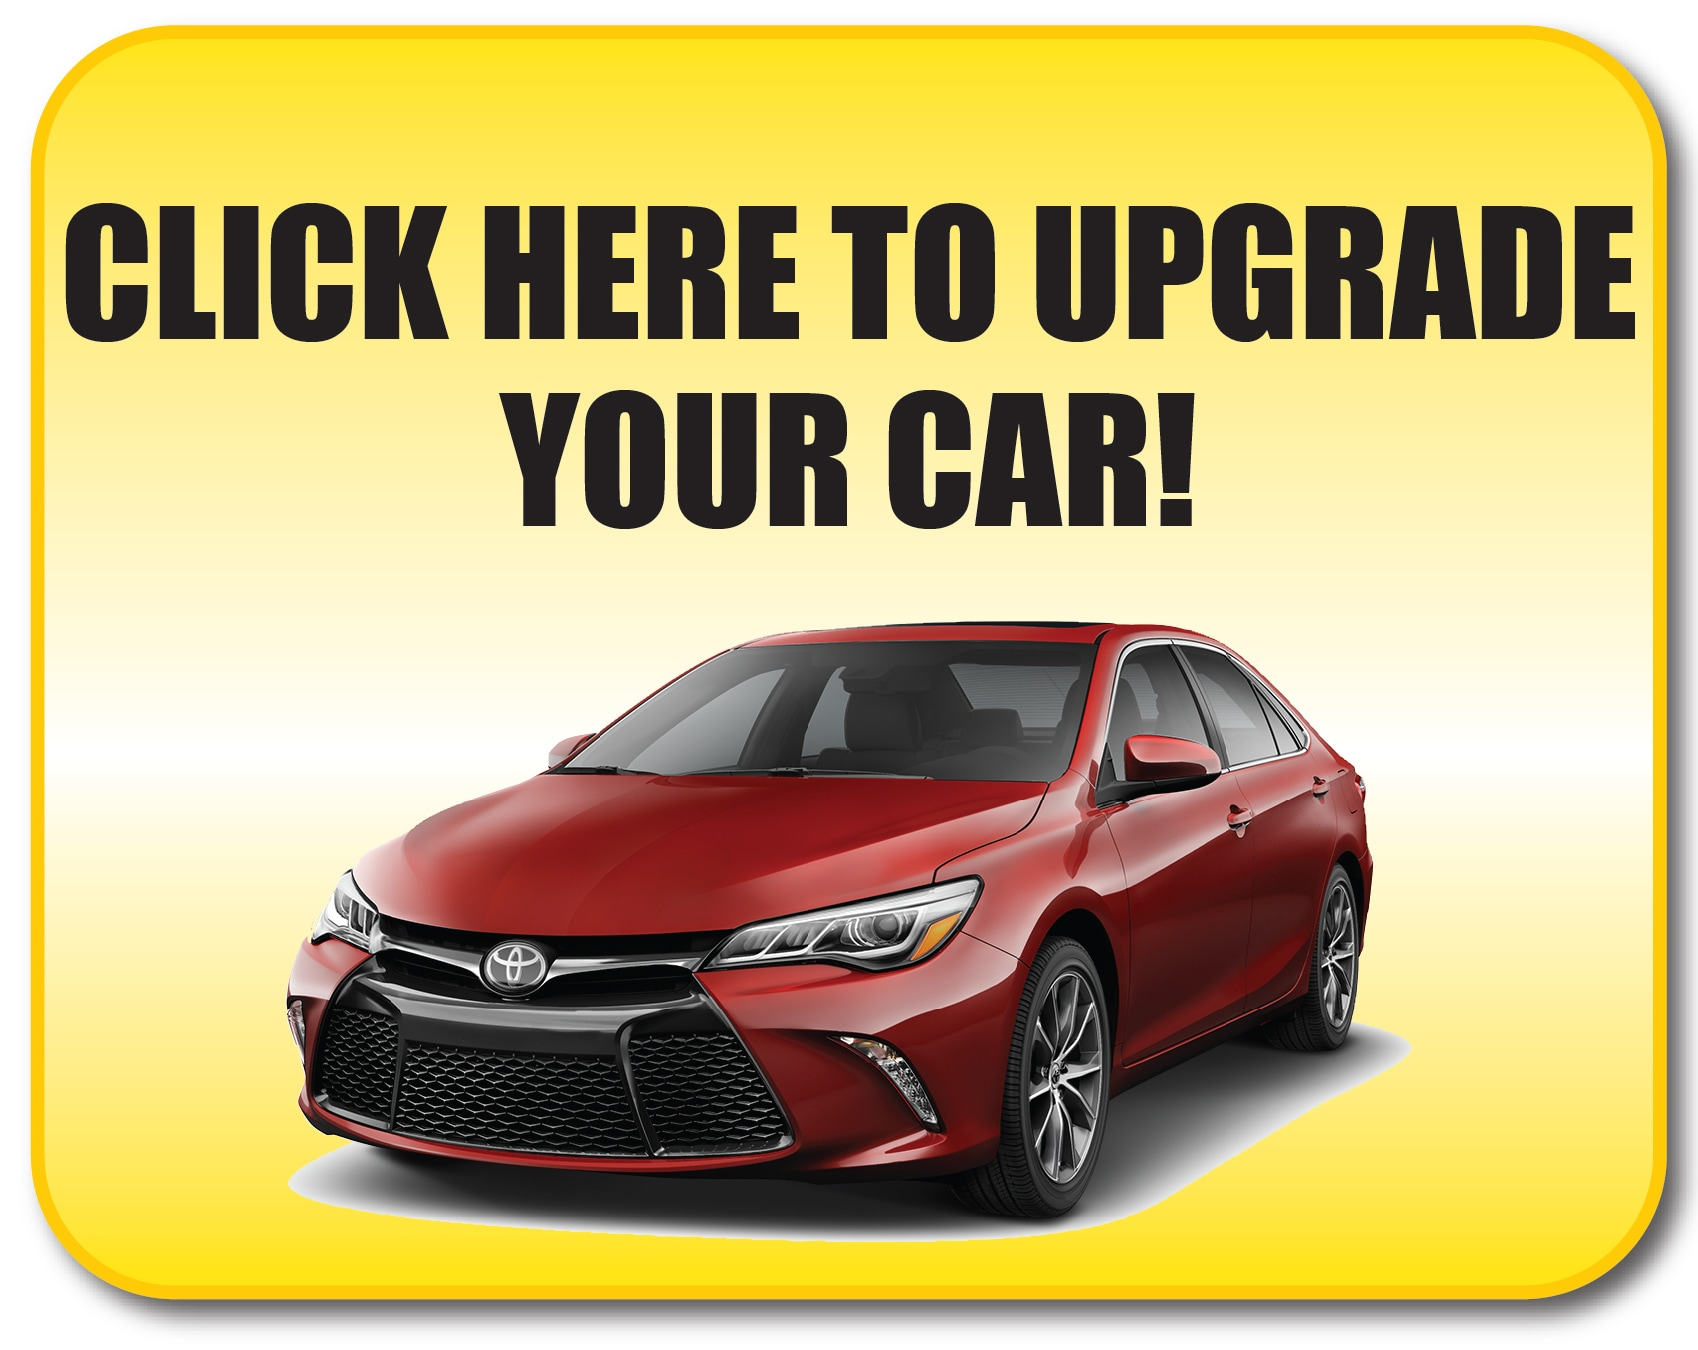 Capitol Toyota | New Toyota dealership in Salem, OR 97301